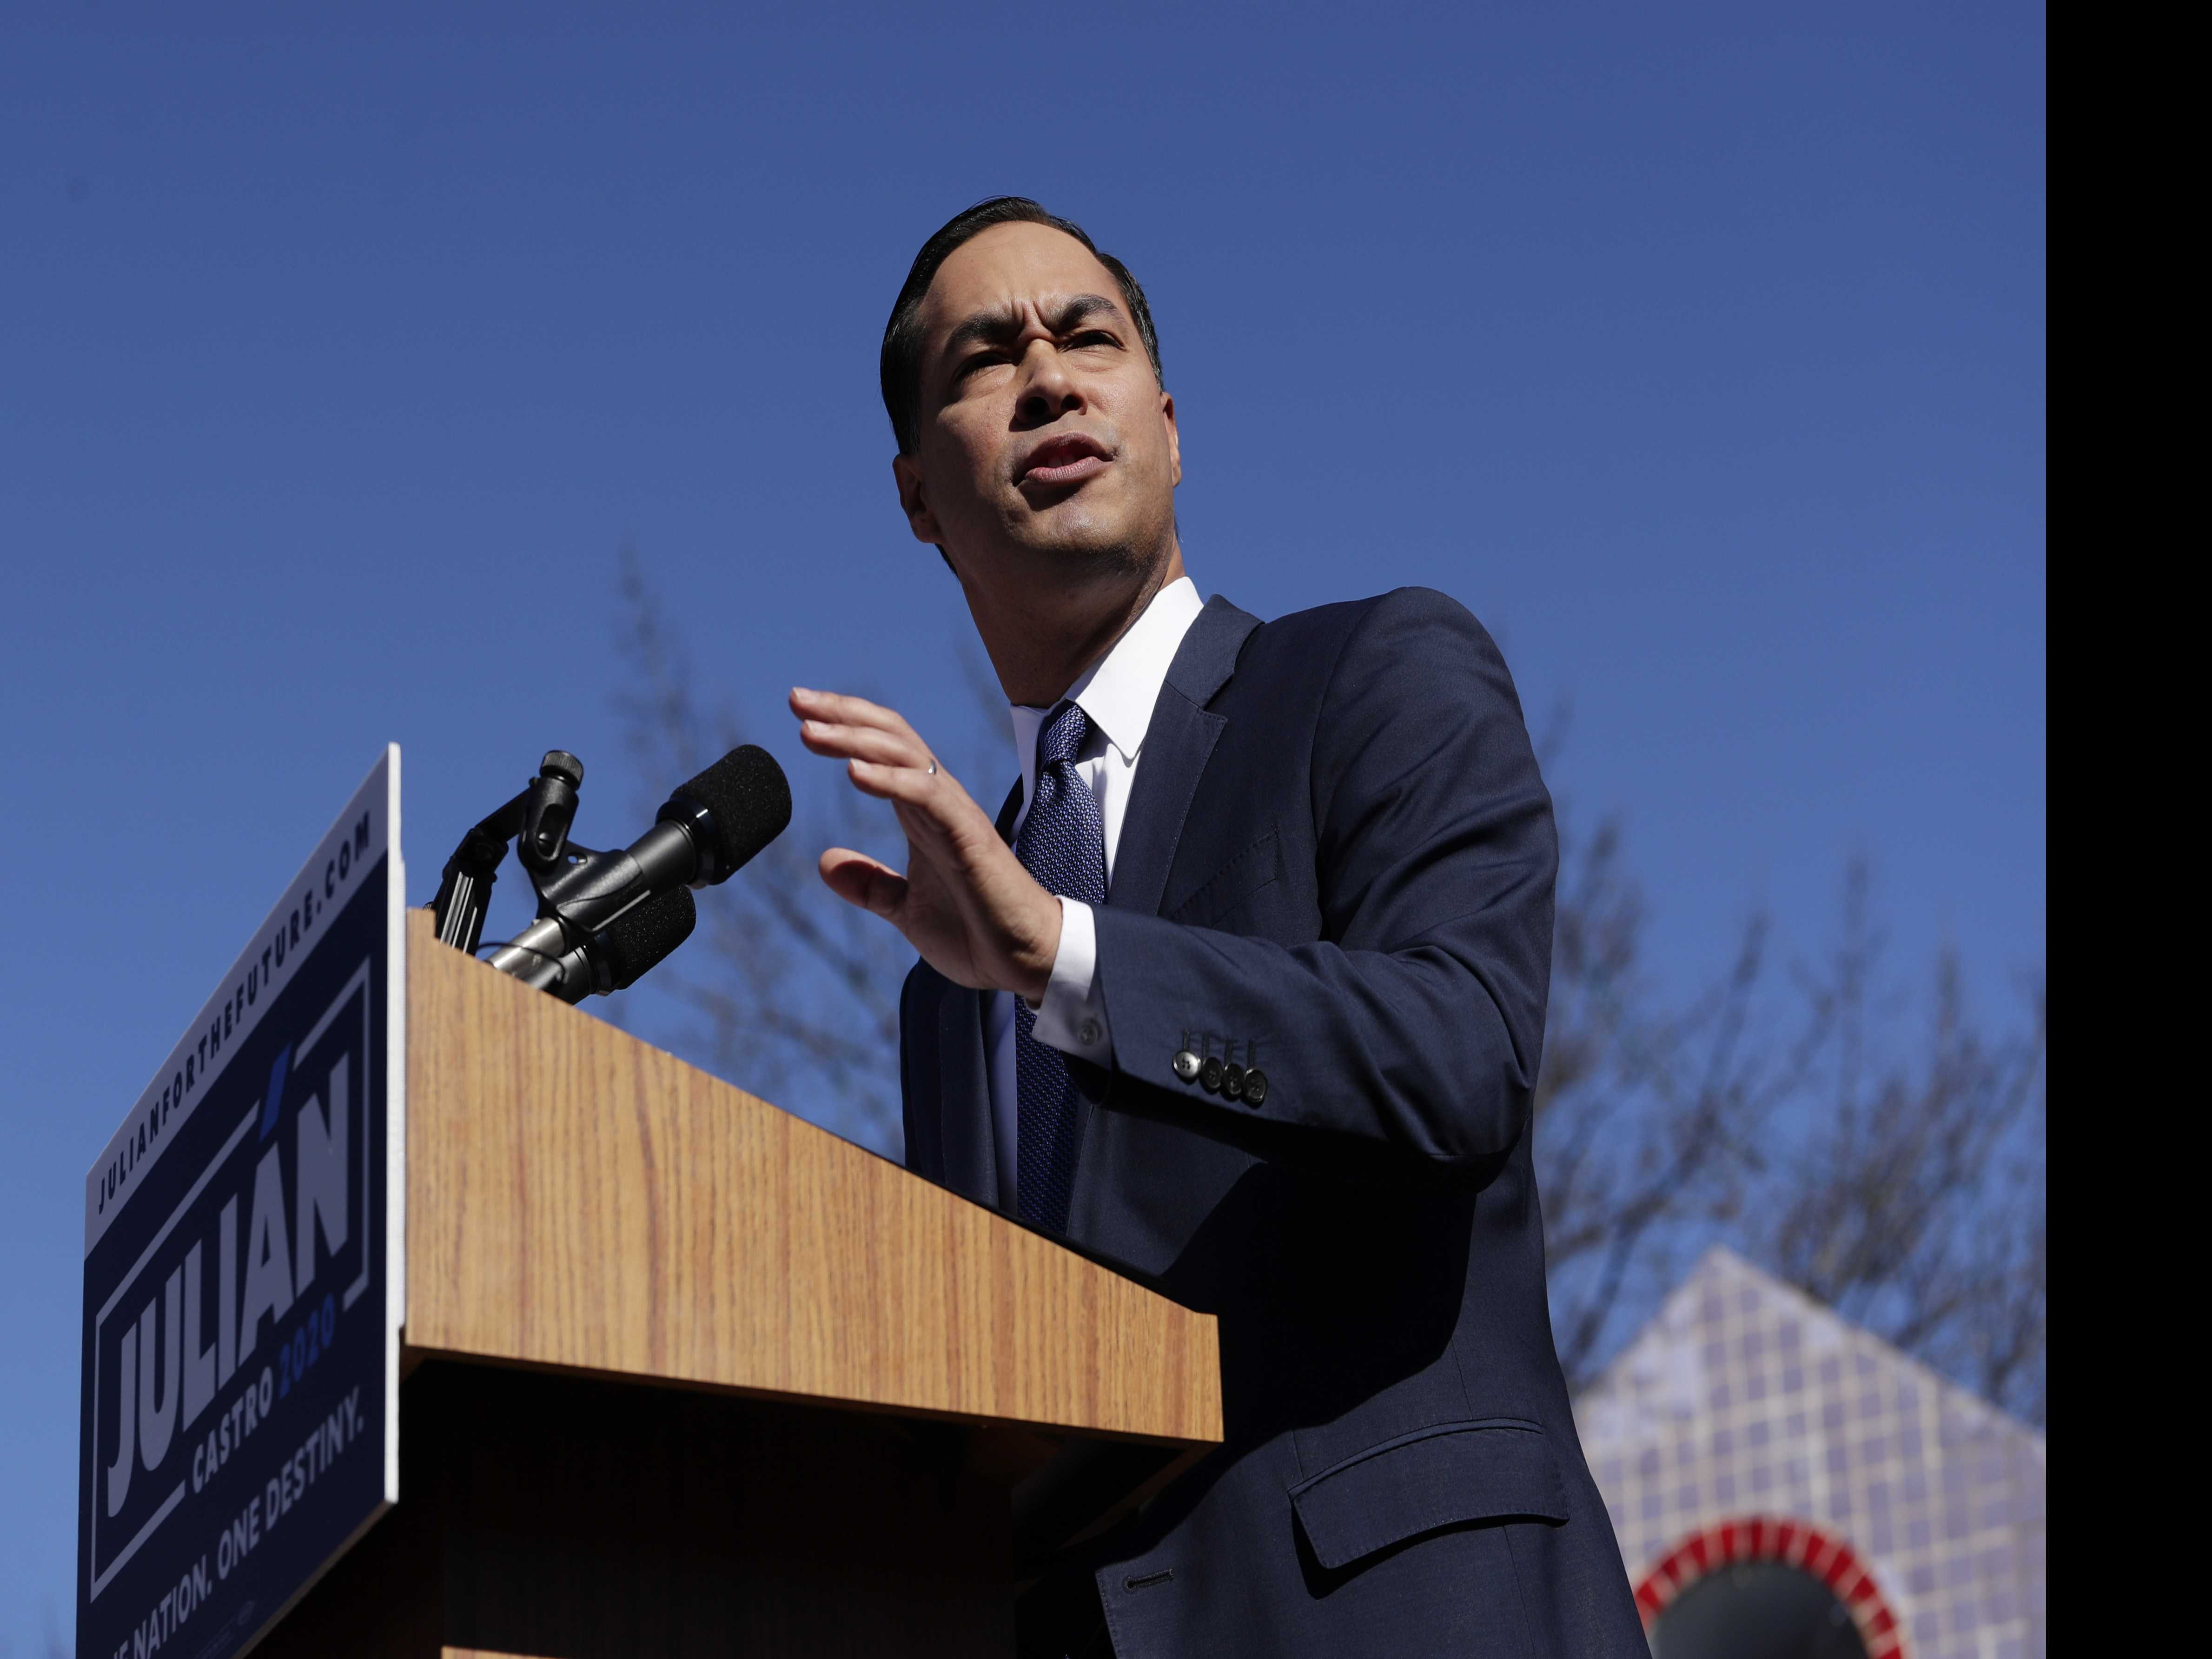 Democrats Lurch Left on Top Policies As 2020 Primary Begins